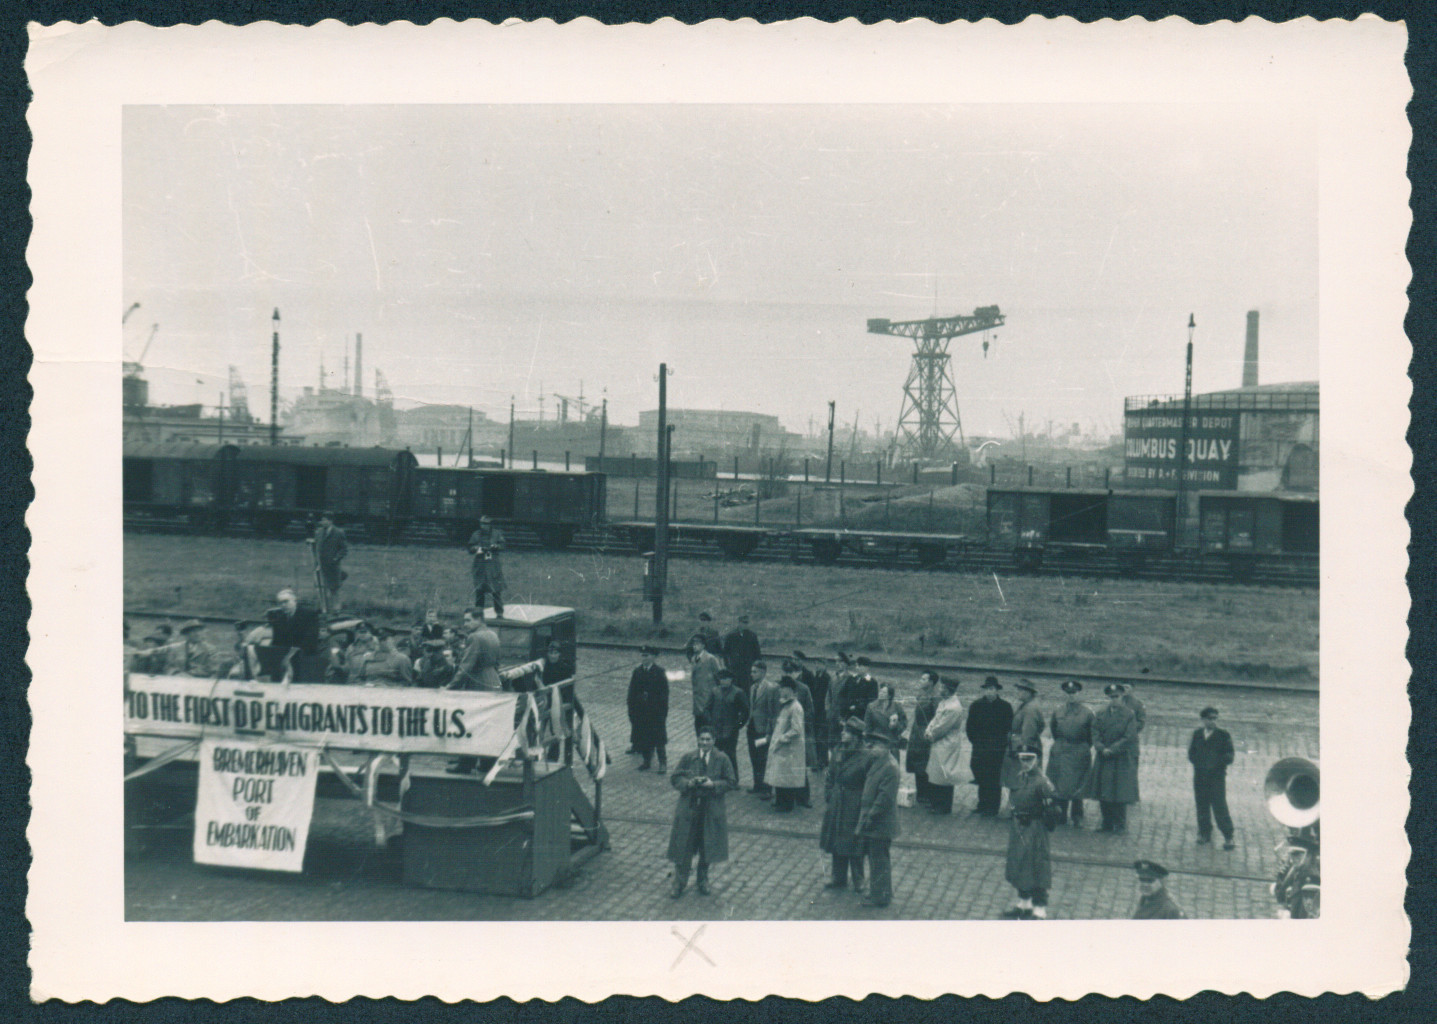 People gather on the pier in Bremerhaven prior to their embarkation on the General Black.